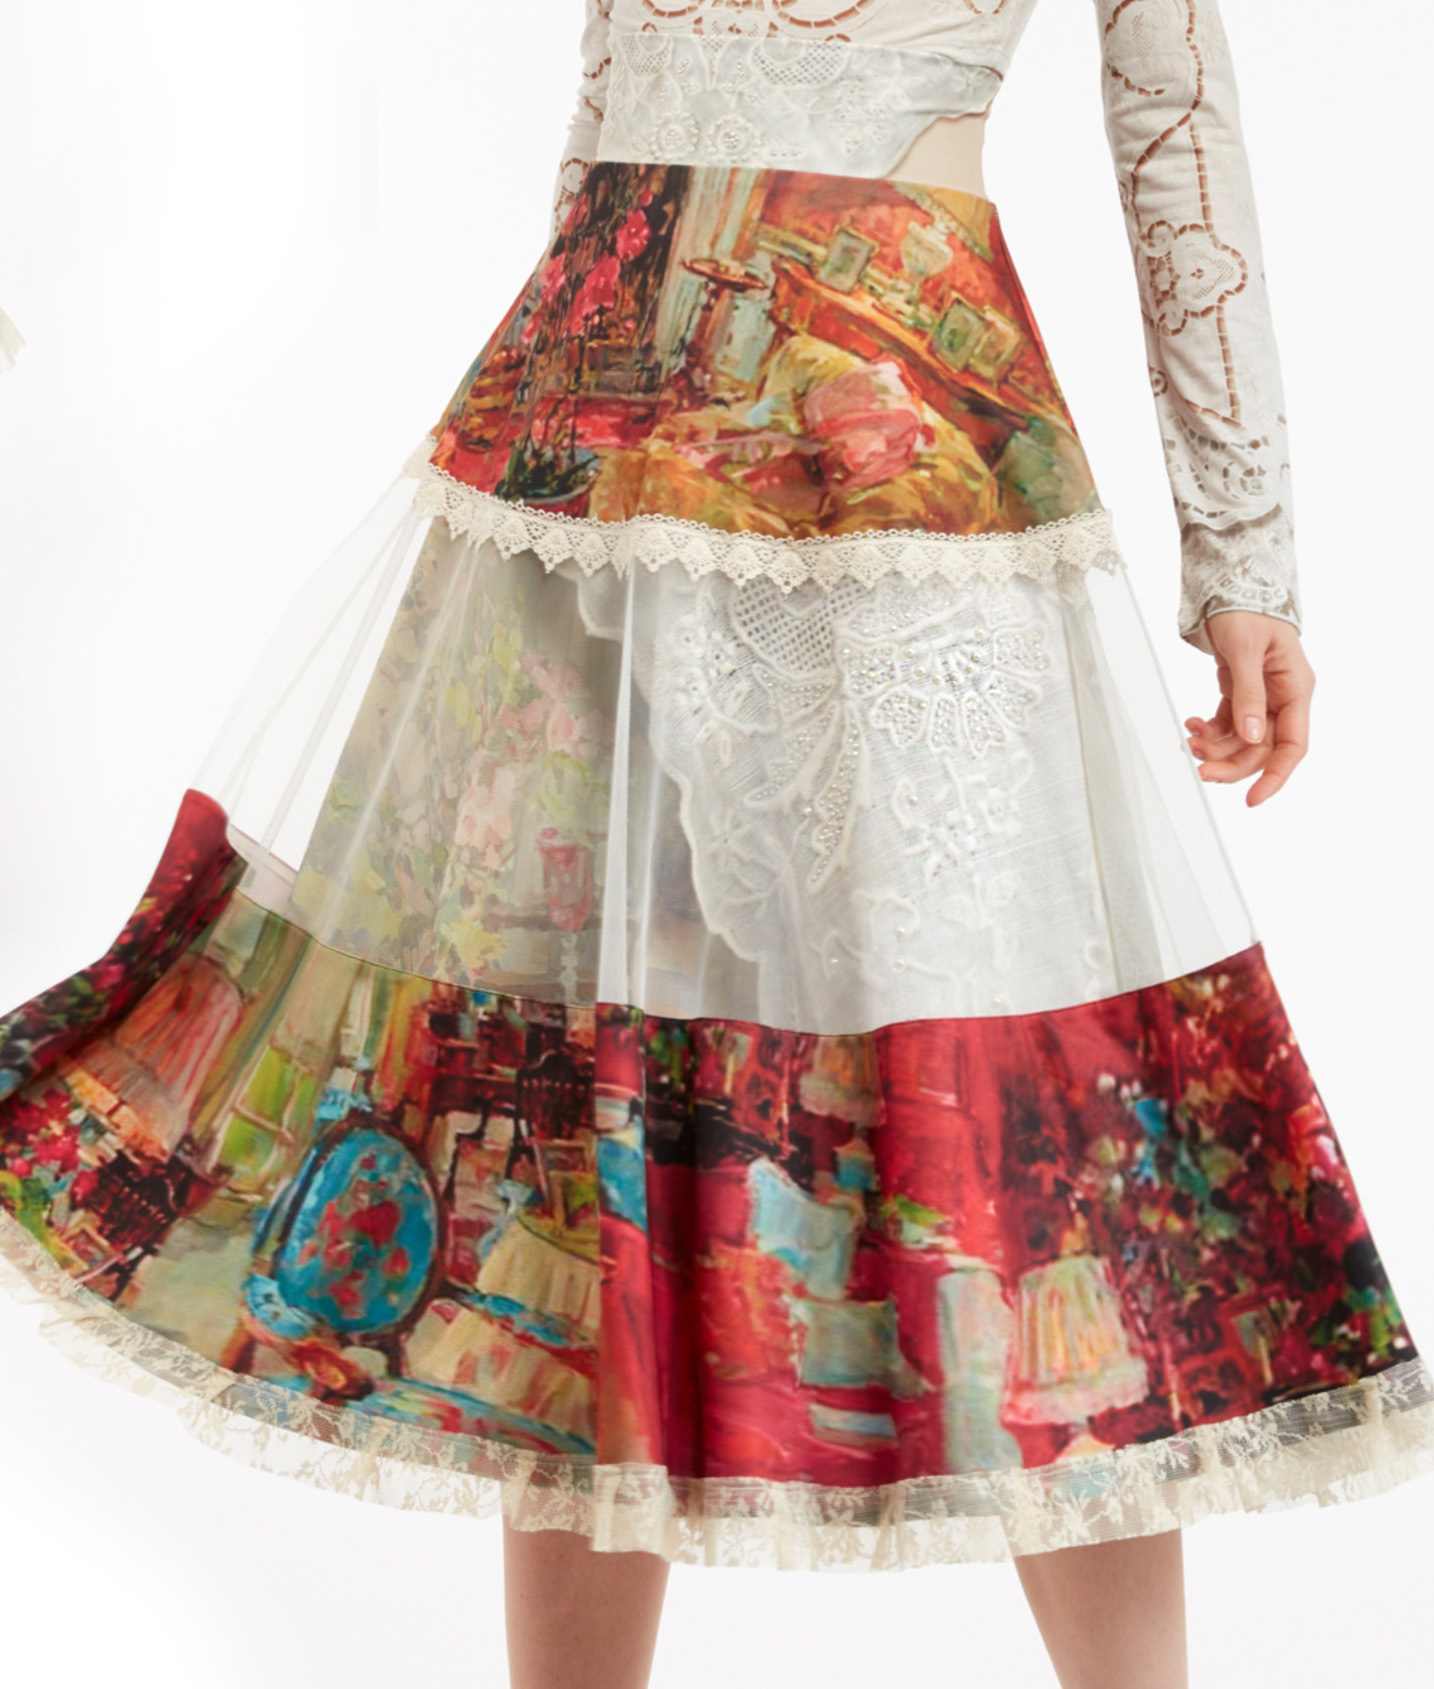 IPNG: Pink Living Room Illusion High Waist Poetic Layers Skirt IPNG_PLSKH-070